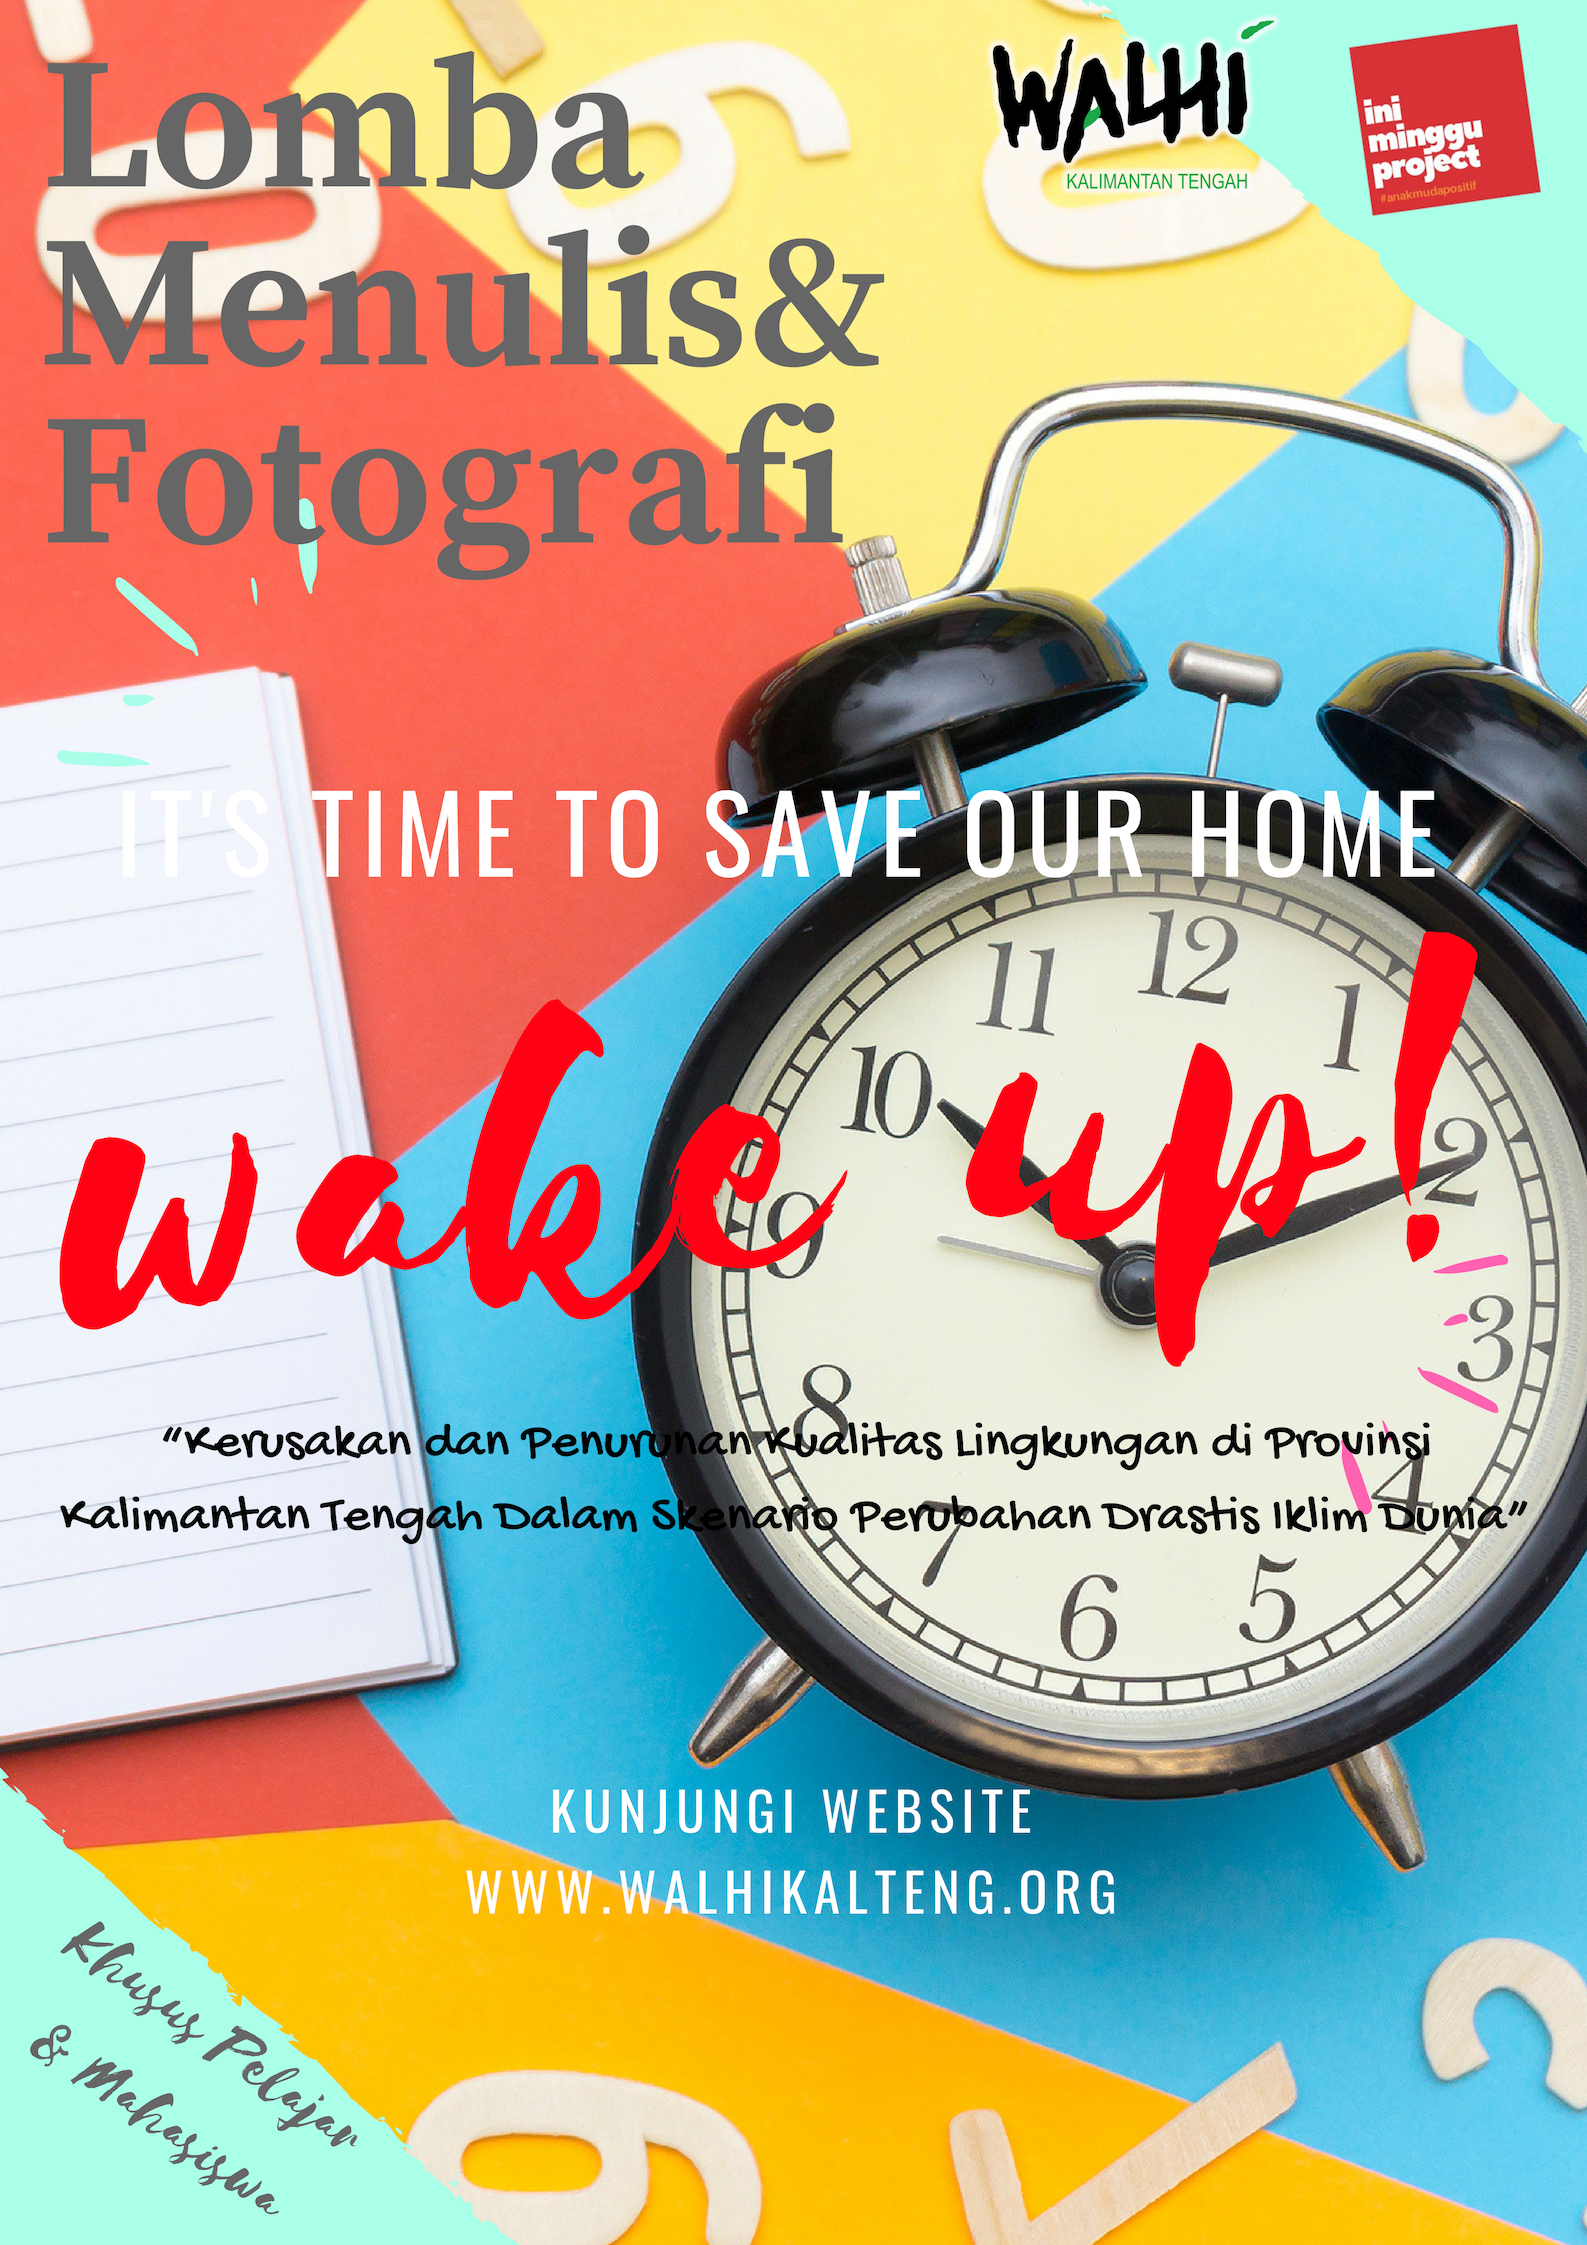 Lomba Menulis dan Fotografi WALHI Kalimantan Tengah x Ini Minggu Project WAKE UP! It's Time to Save Our Home!